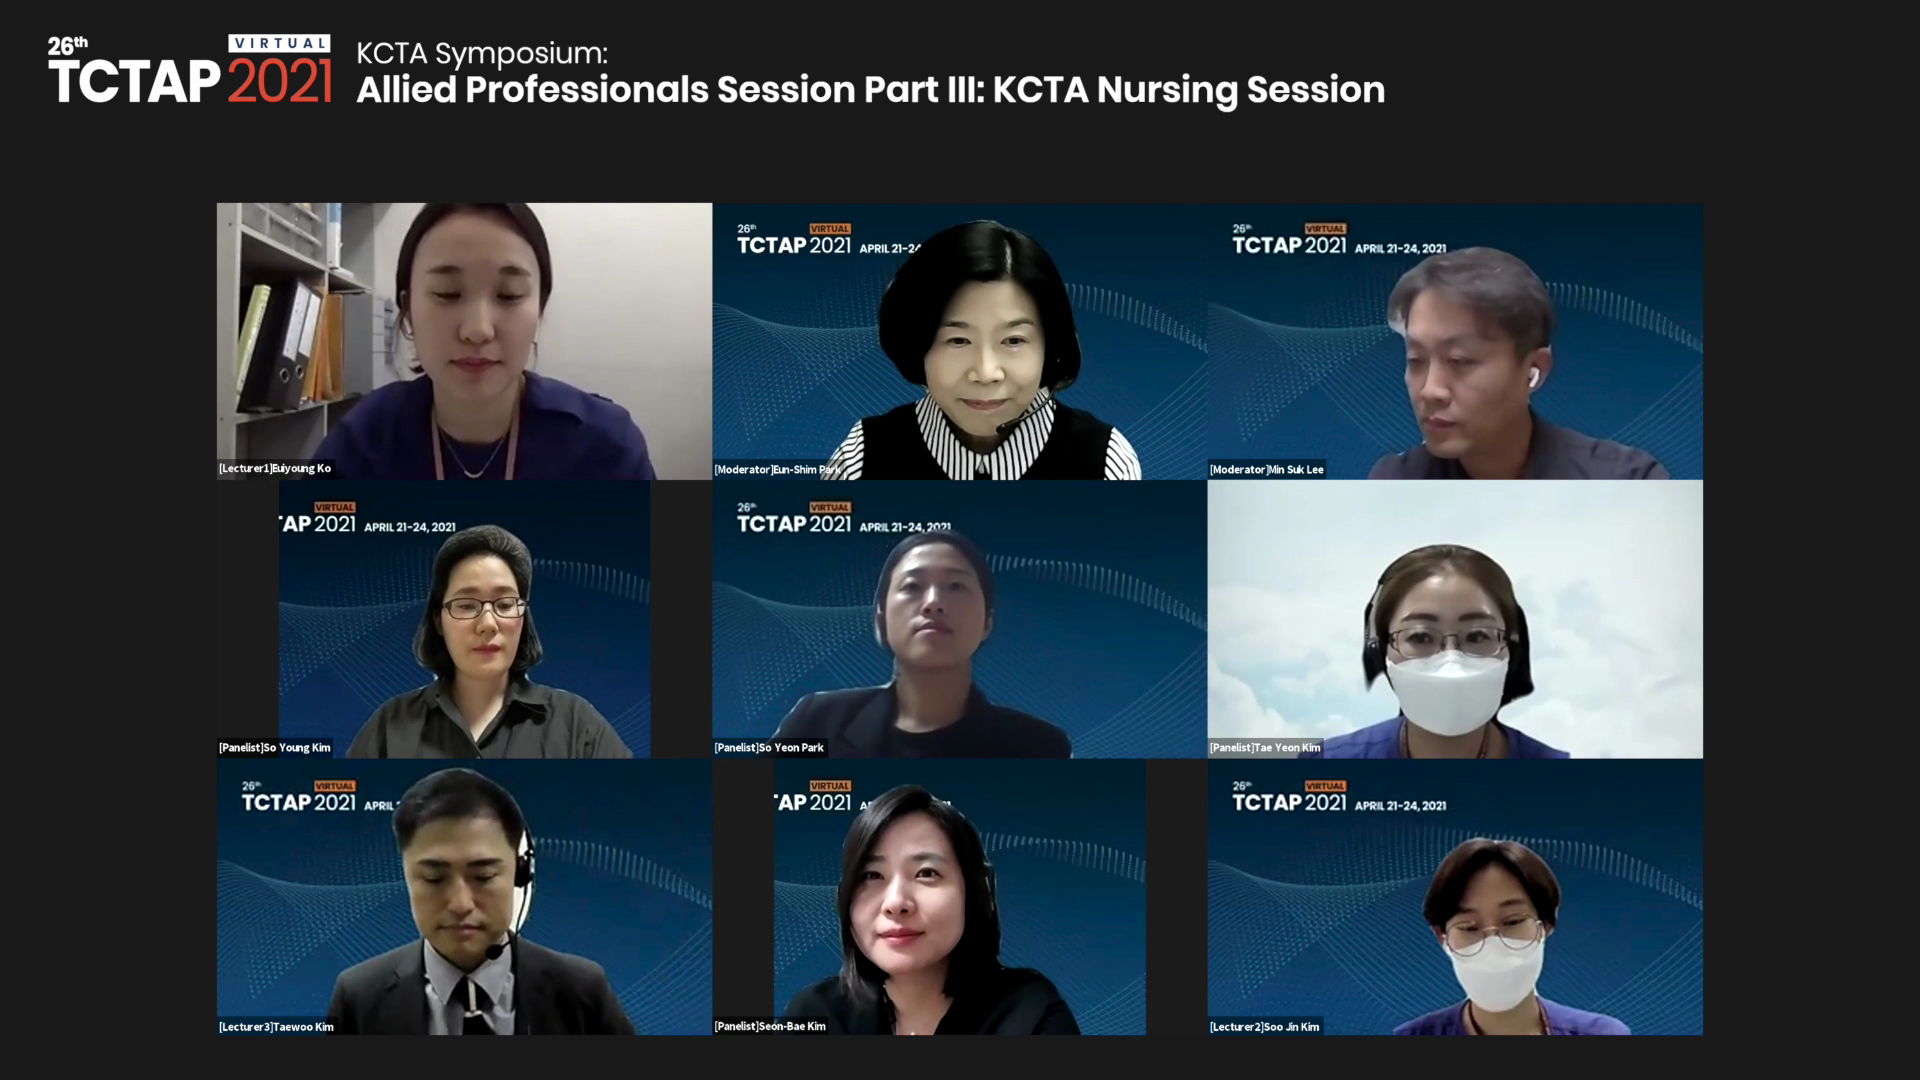 KCTA Symposium: Allied Professionals Session - Part III: KCTA Nursing Session